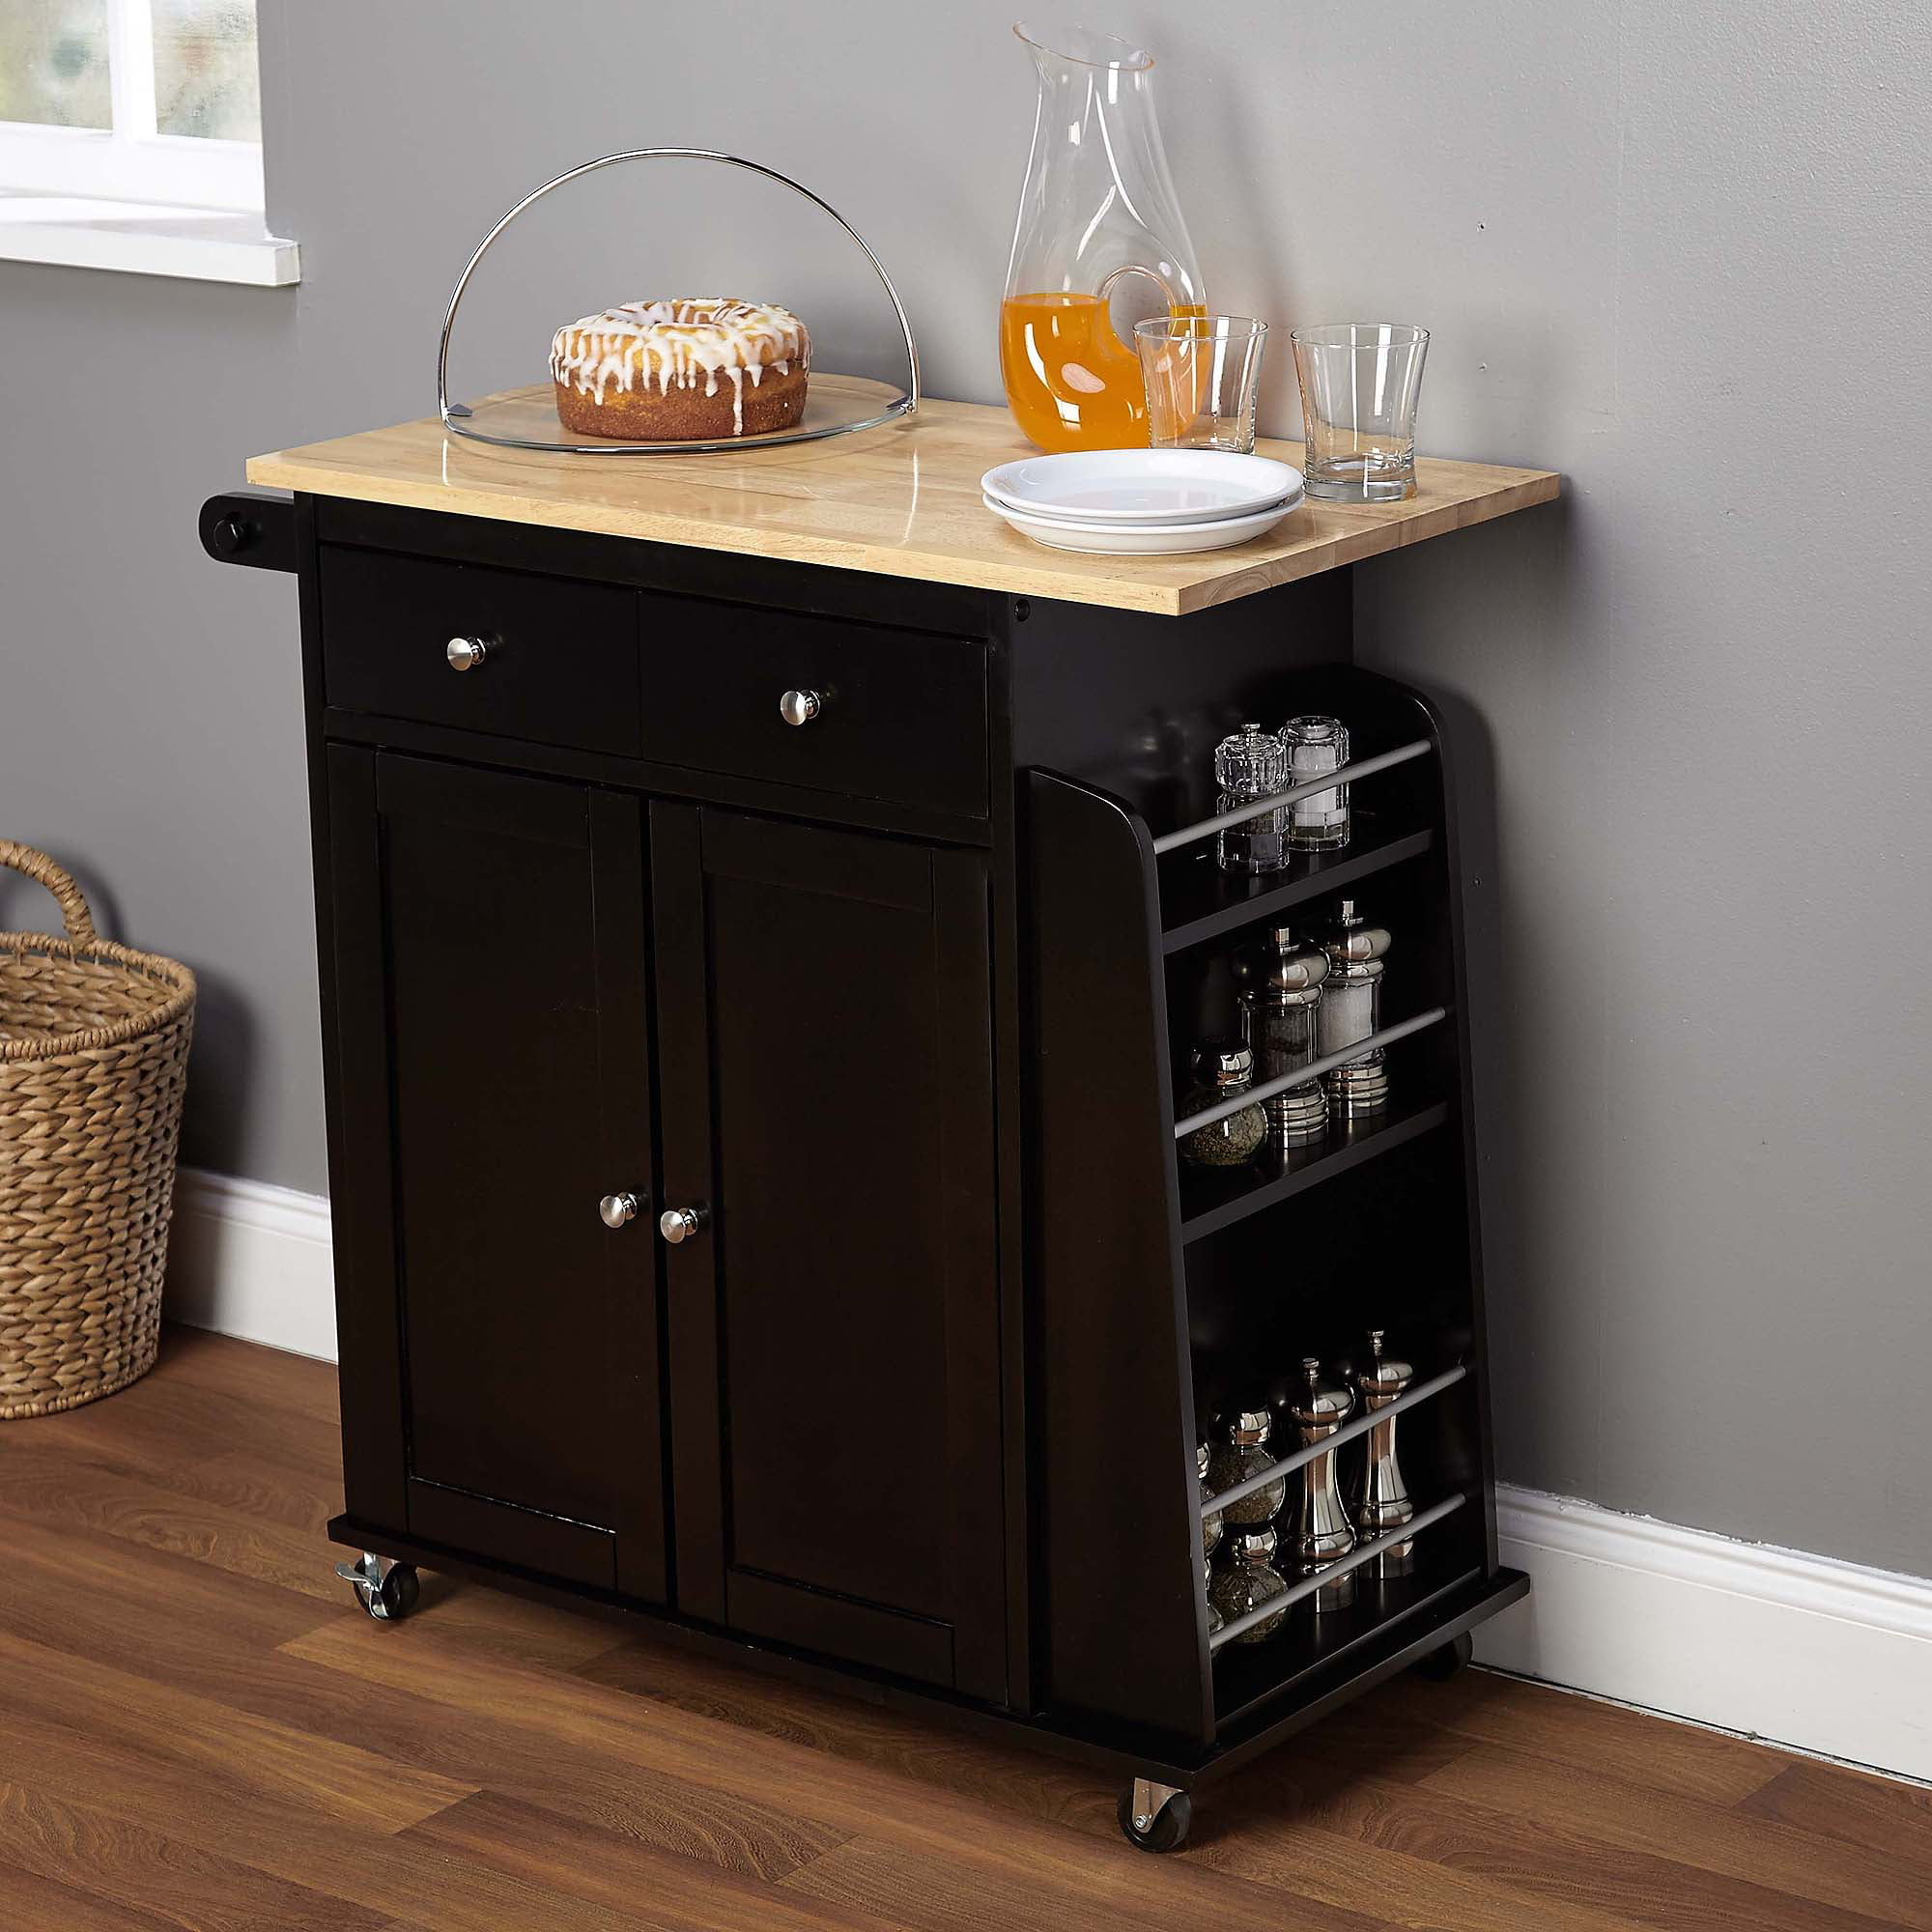 sonoma kitchen cart multiple colors walmartcom - Kitchen Carts